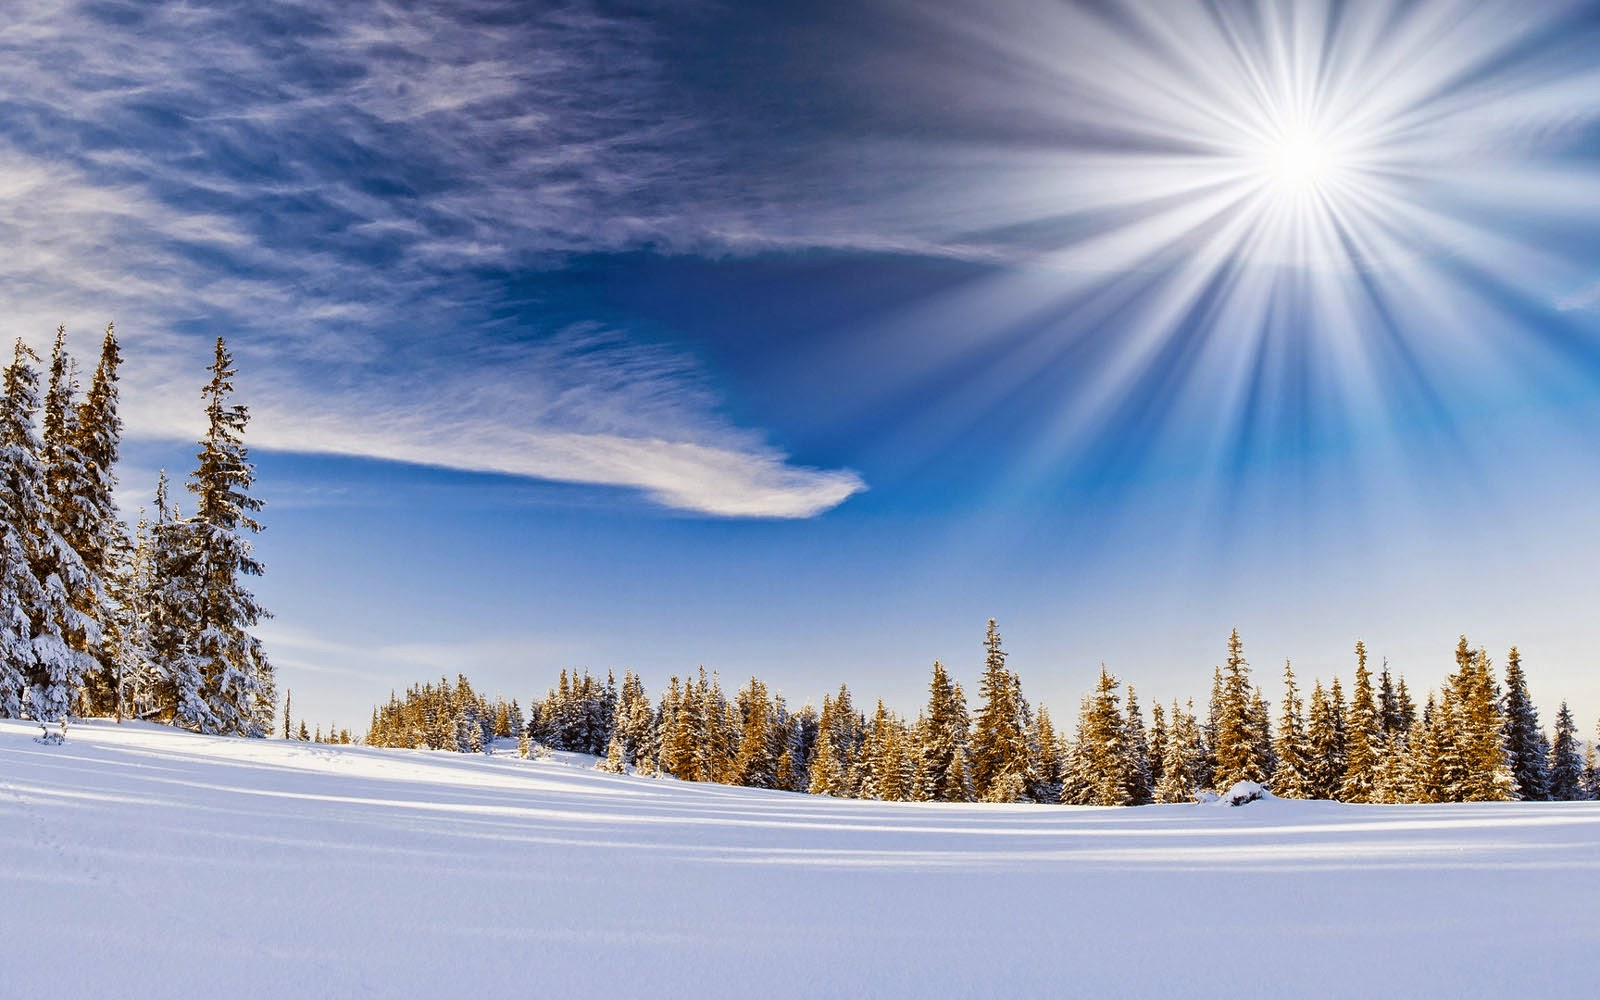 Wallpapers winter wallpapers for Immagini desktop inverno